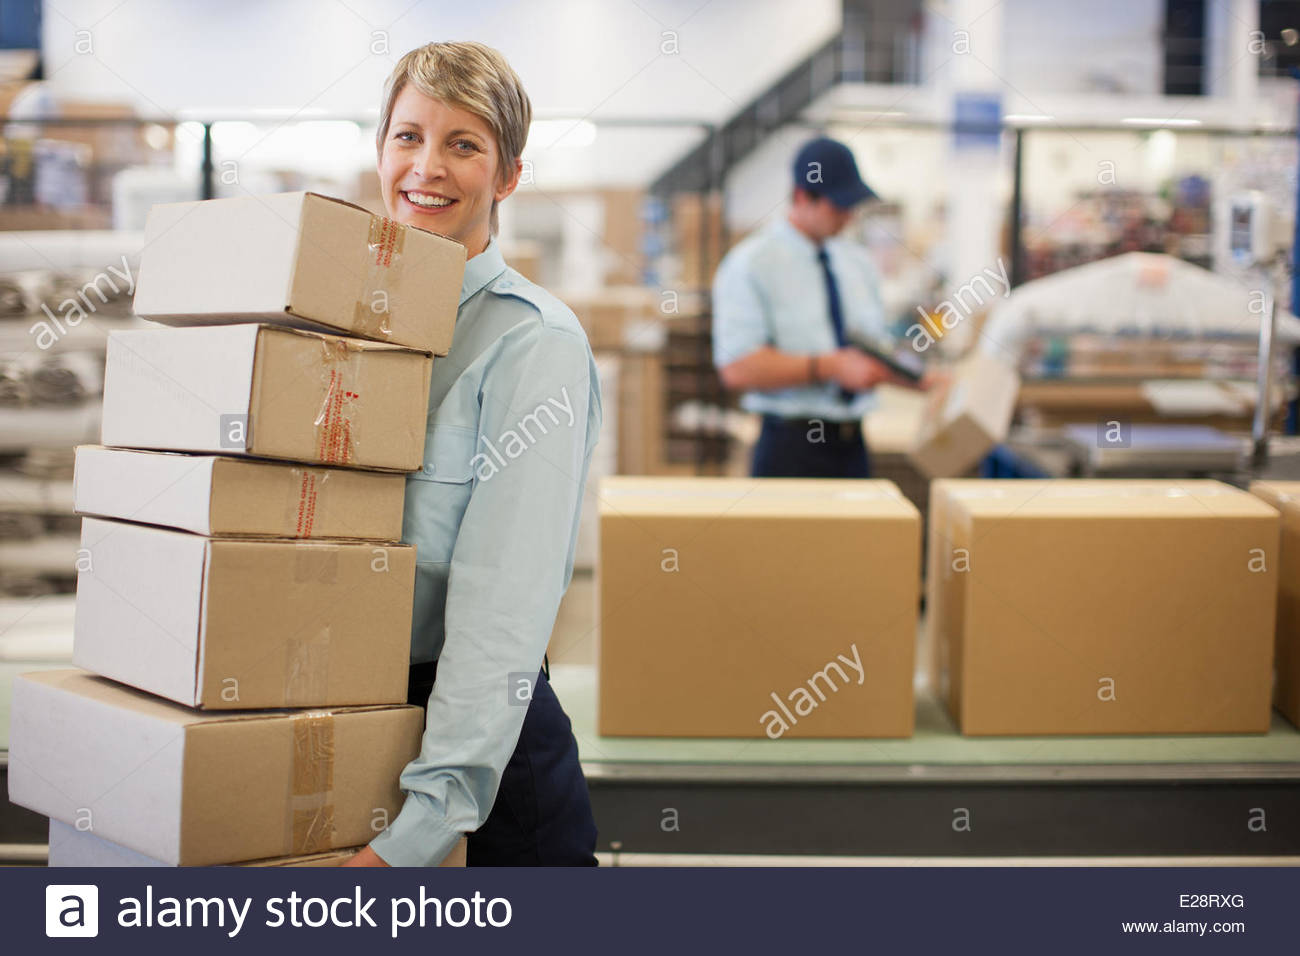 Worker carrying boxes in shipping area - Stock Image